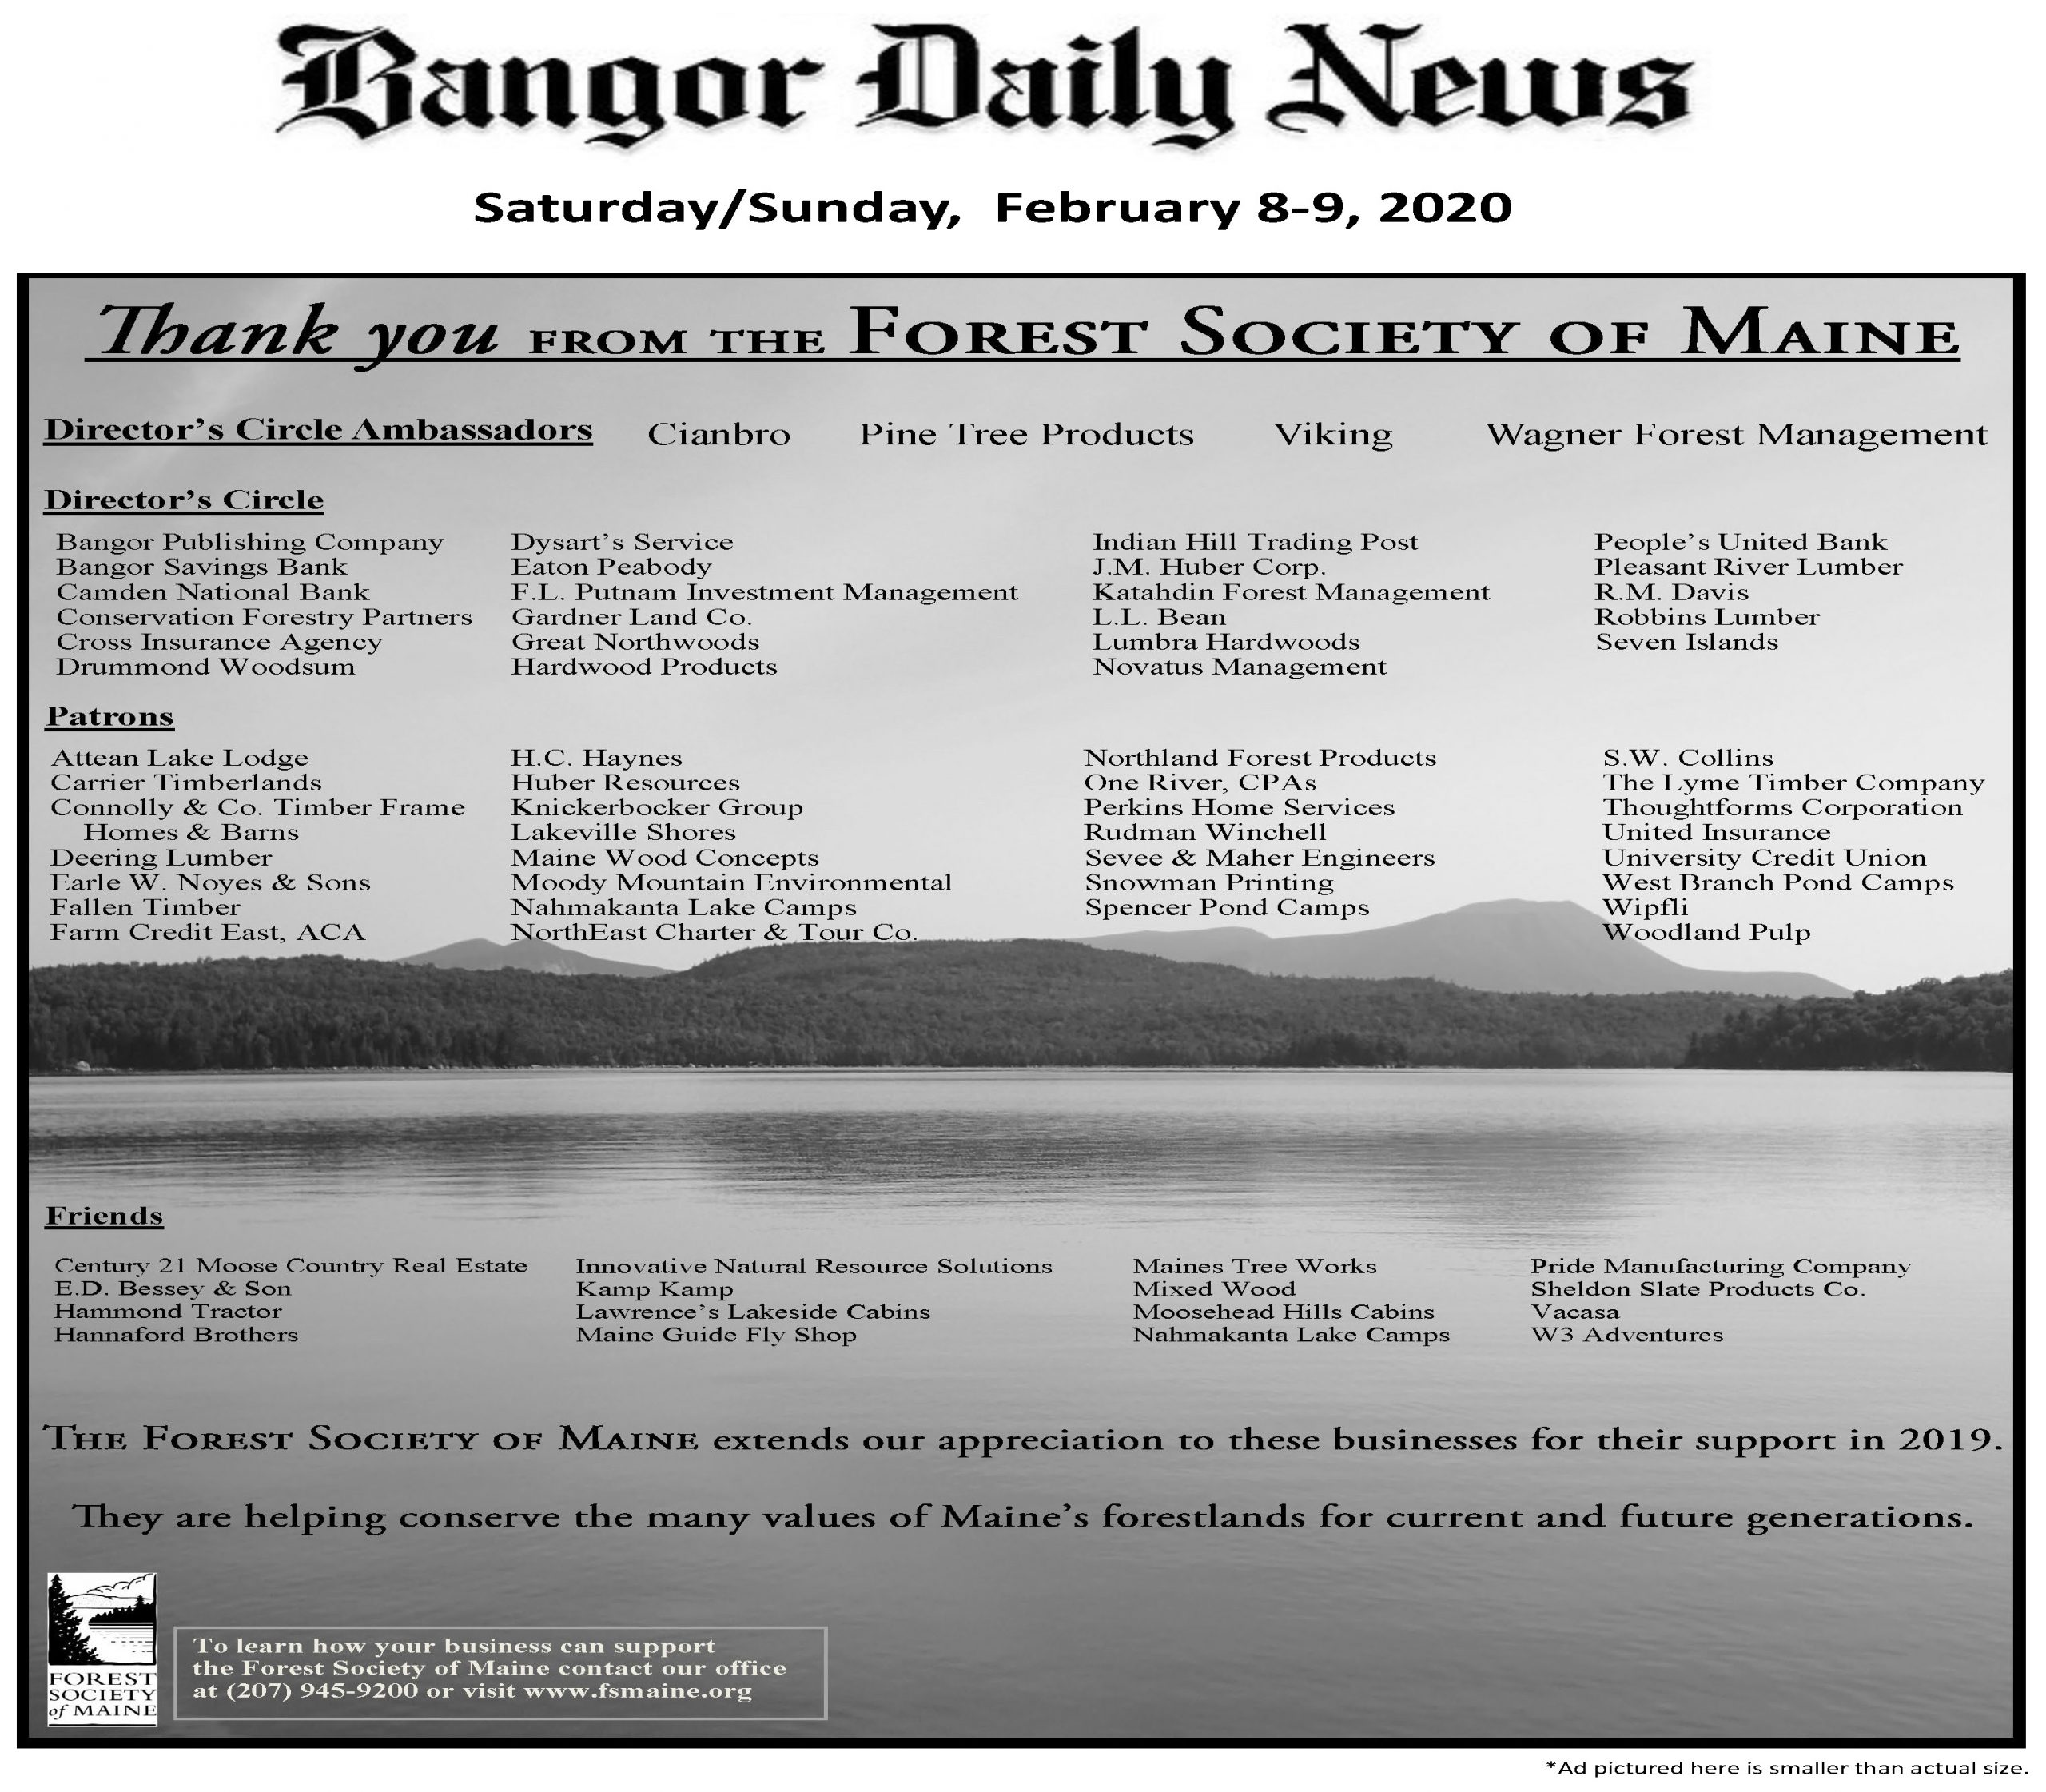 Picture of ad thanking FSM business supporters that appeared in the 2020 Bangor Daily News